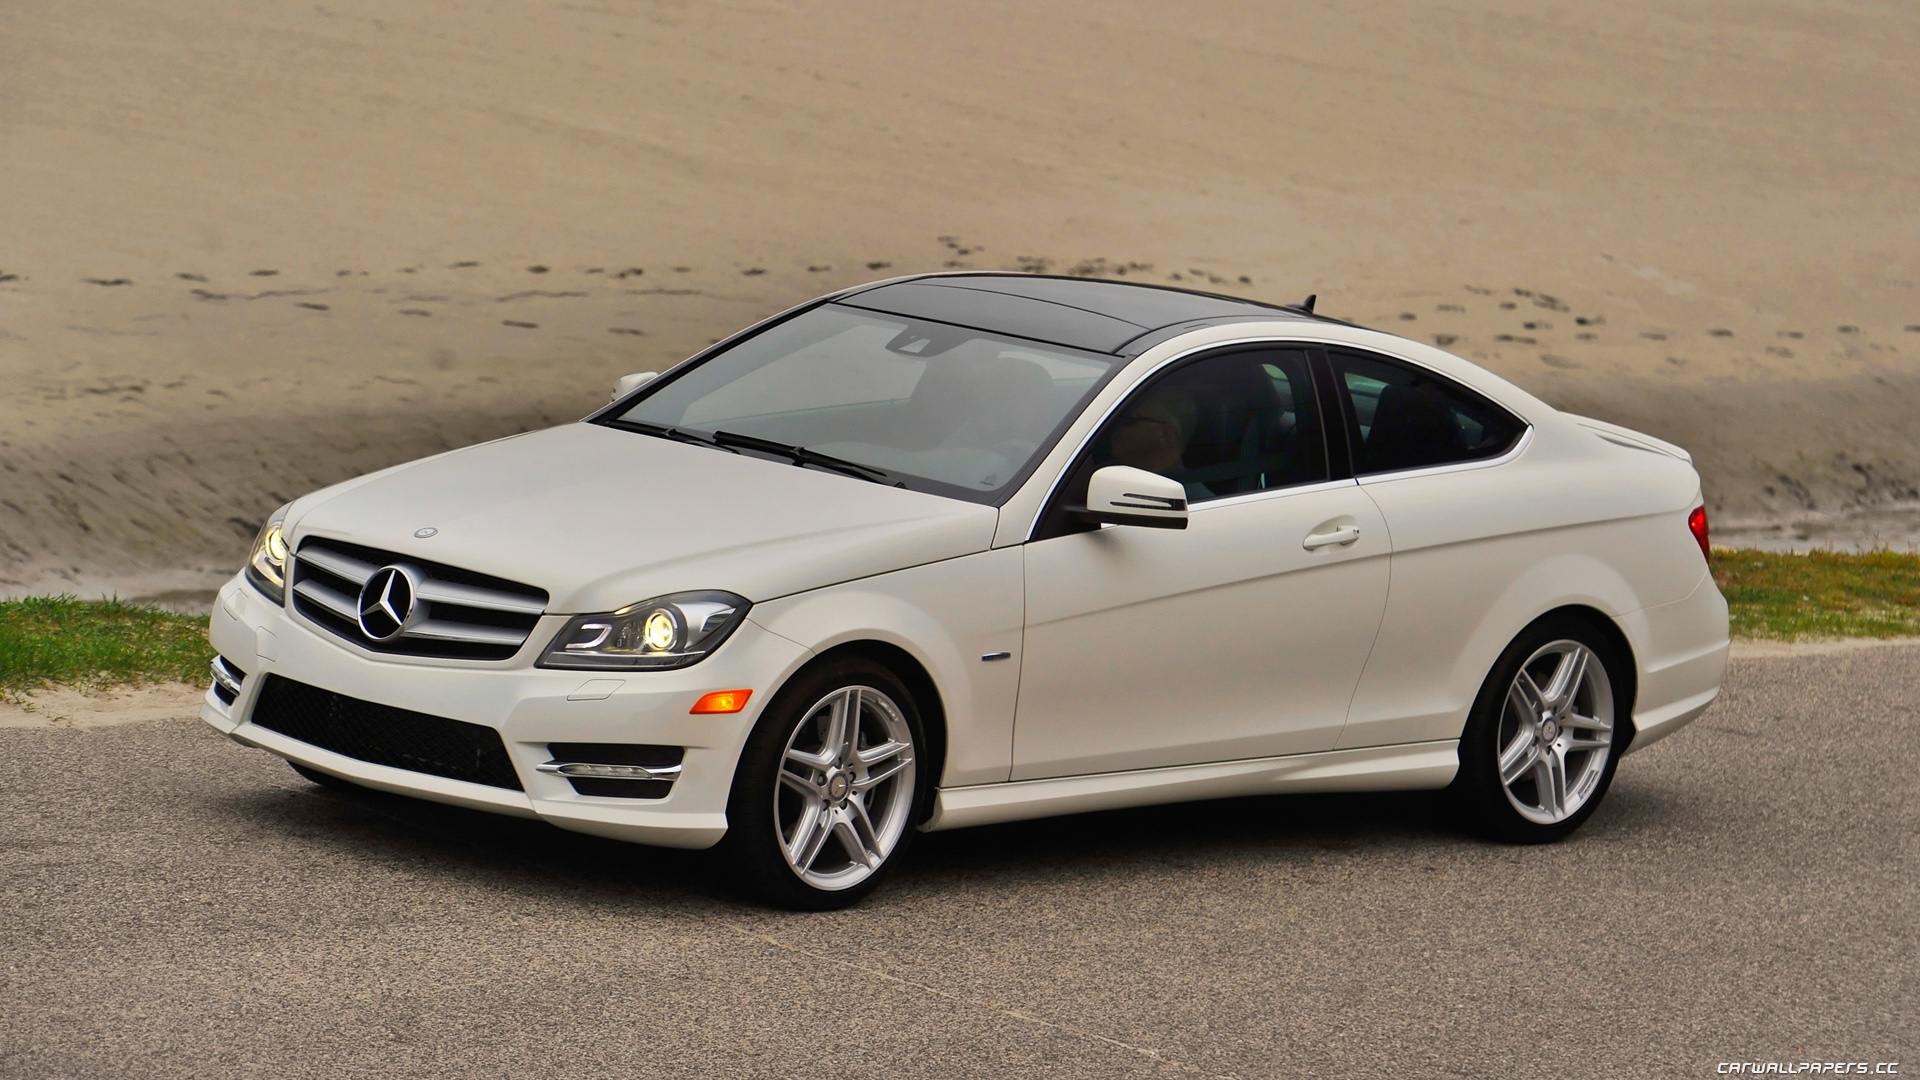 Benz coupe photo - 1